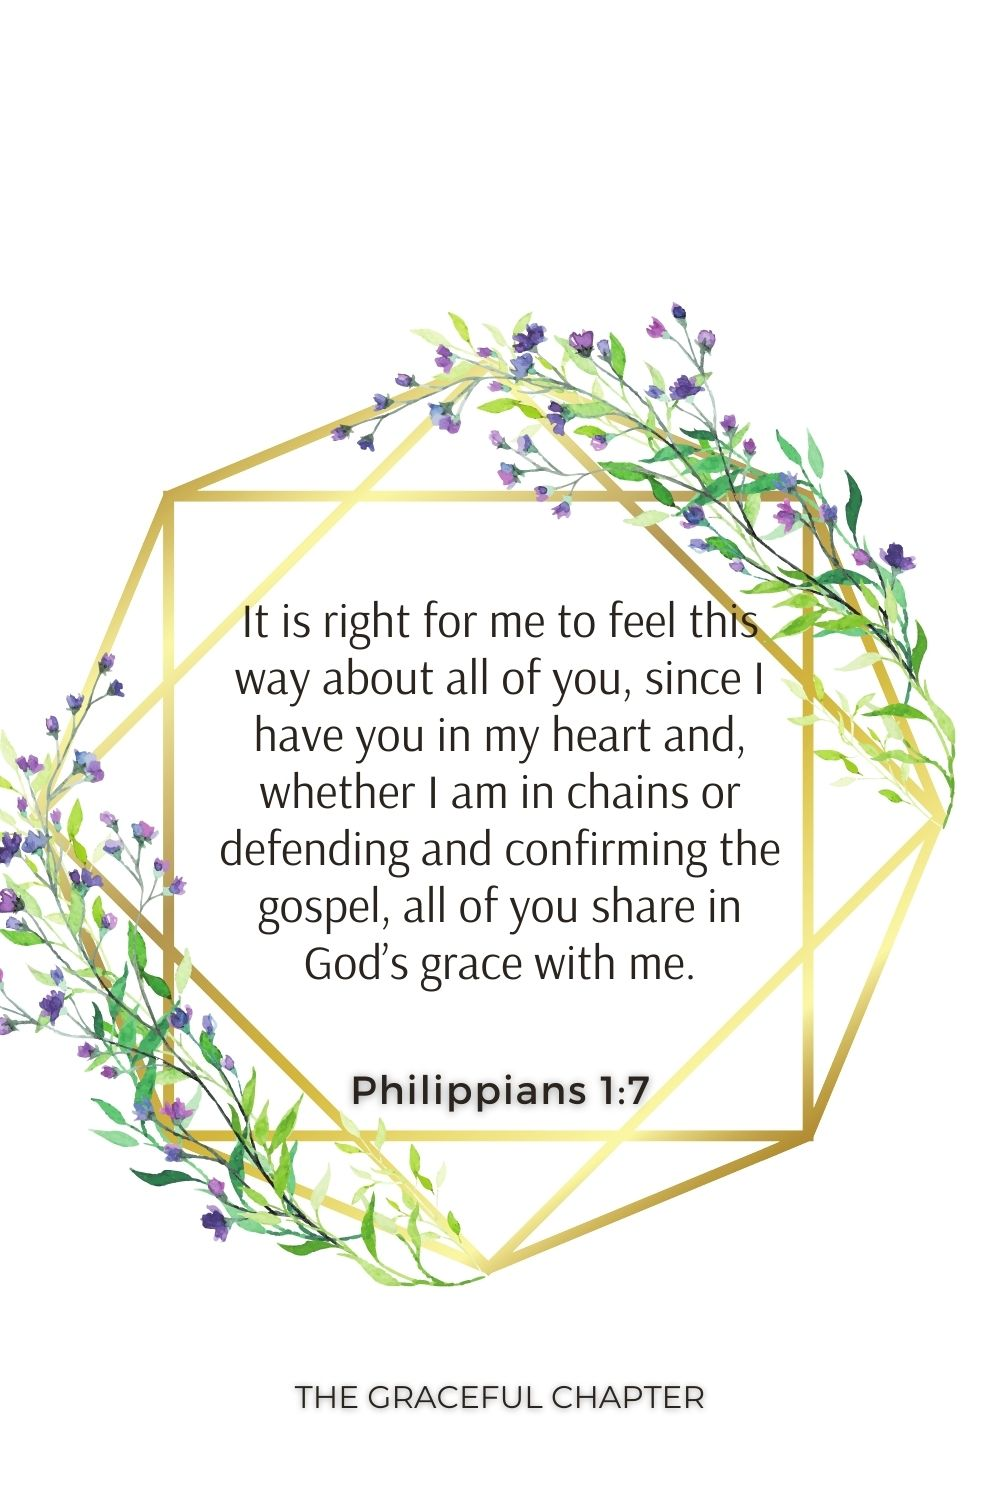 It is right for me to feel this way about all of you, since I have you in my heart and, whether I am in chains or defending and confirming the gospel, all of you share in God's grace with me. Philippians 1:7